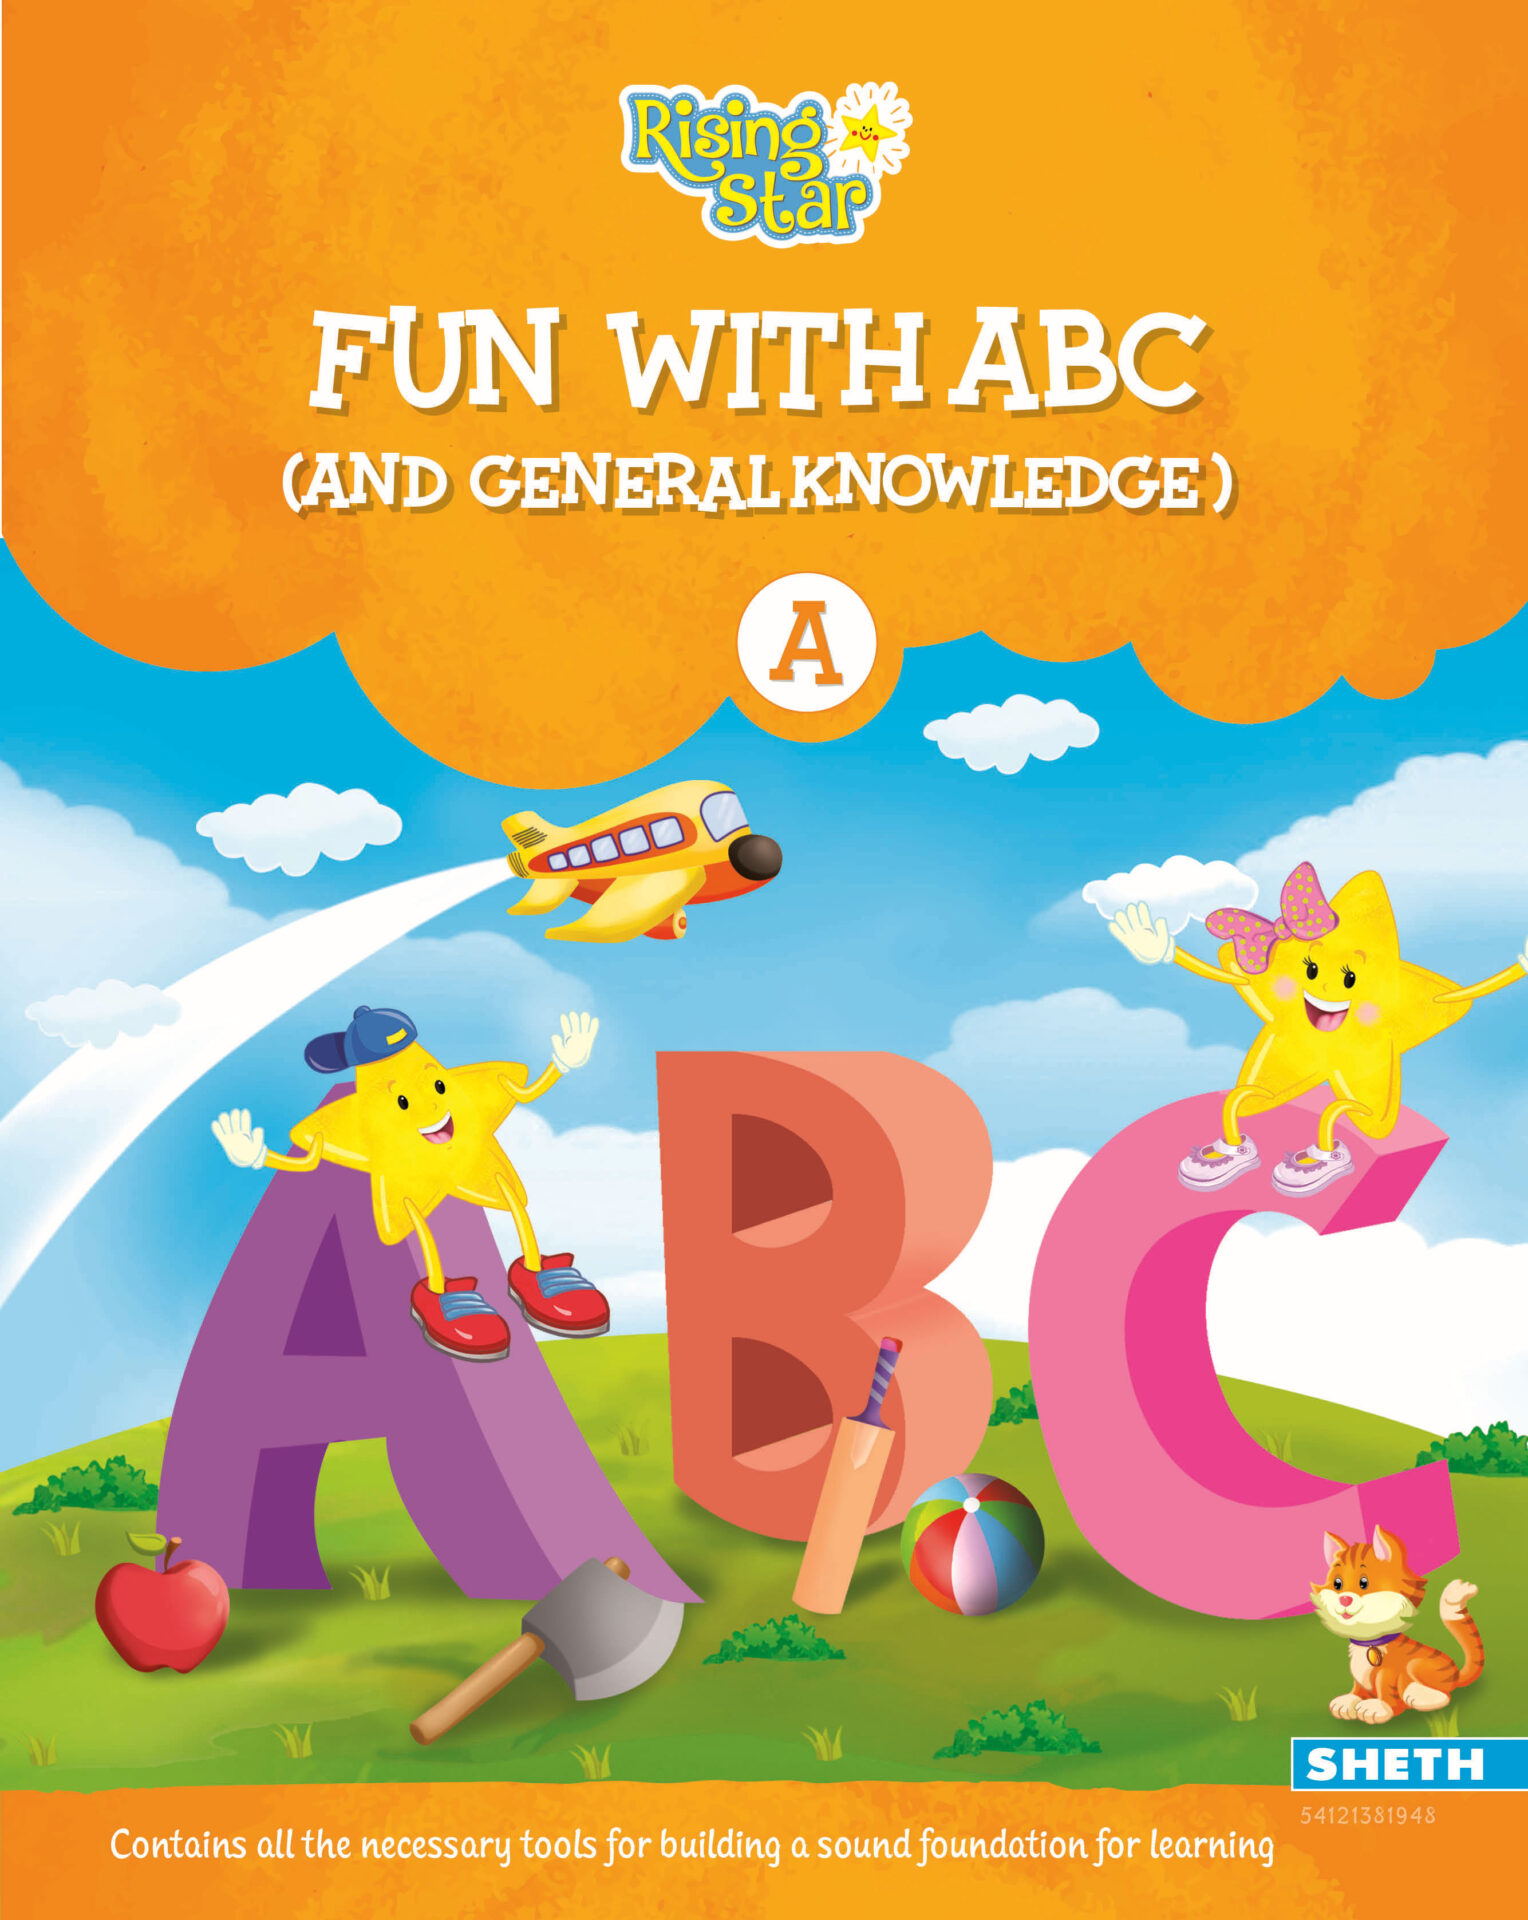 Rising Star Fun with ABC and General Knowledge A 1